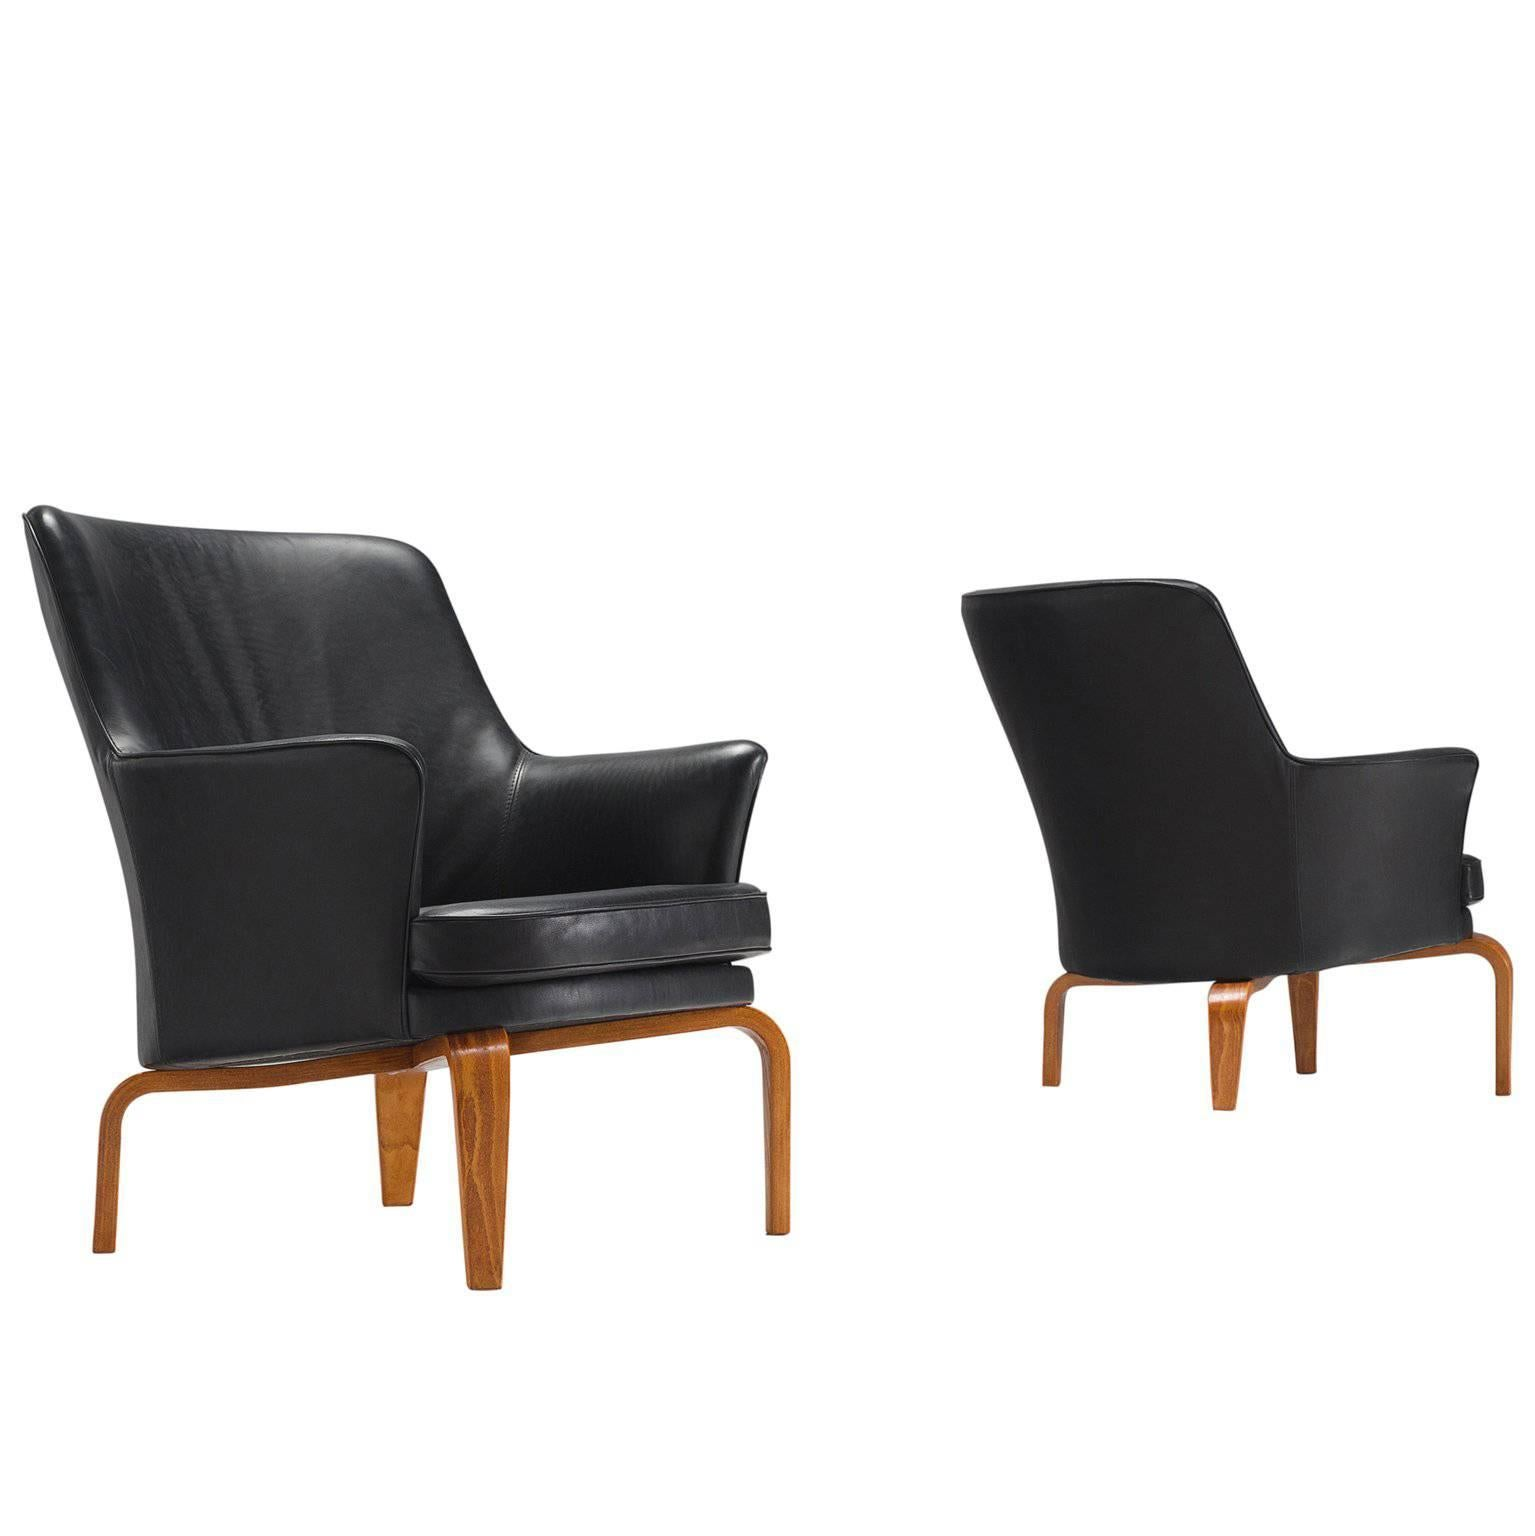 Delicieux Arne Norell Pair Of Reupholstered High Quality Leather U0027Pilotu0027 Armchairs